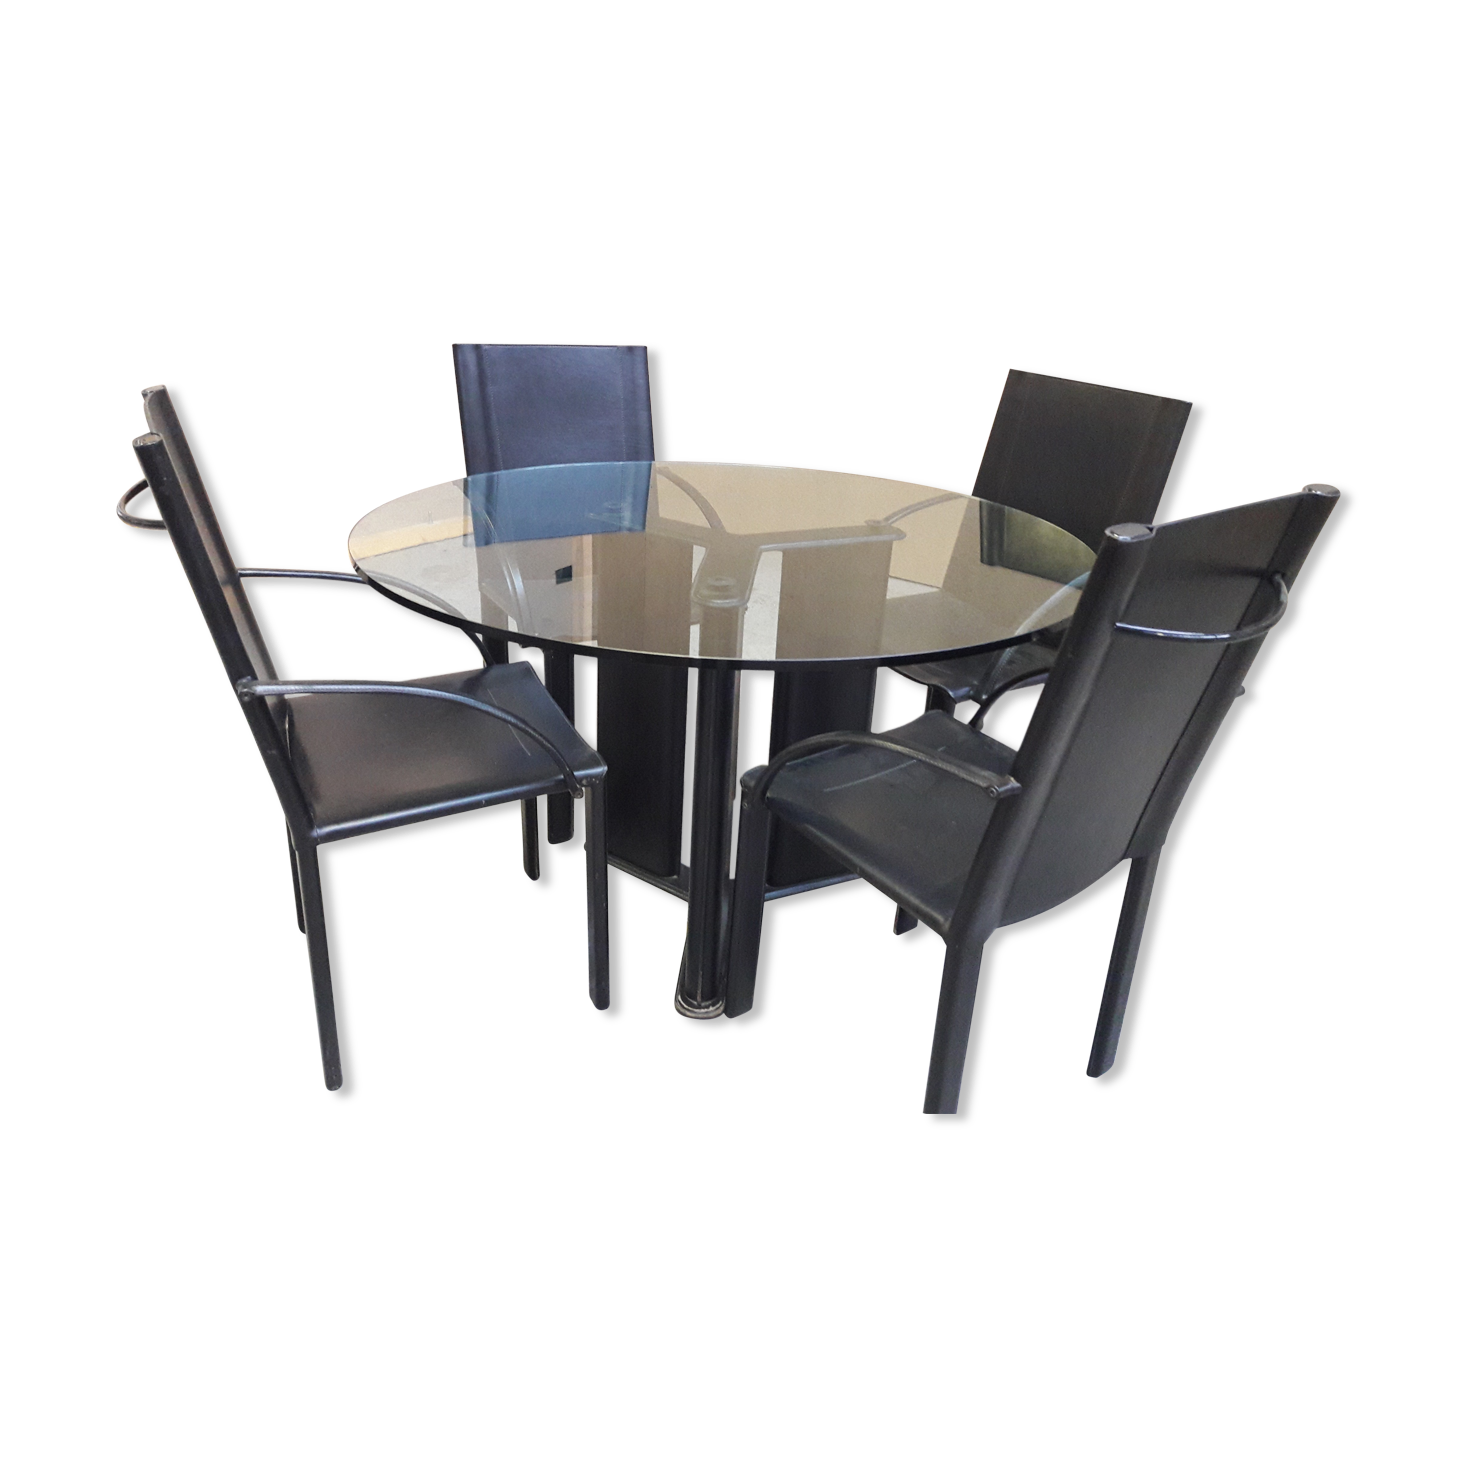 table originale salle manger conceptions de la maison. Black Bedroom Furniture Sets. Home Design Ideas